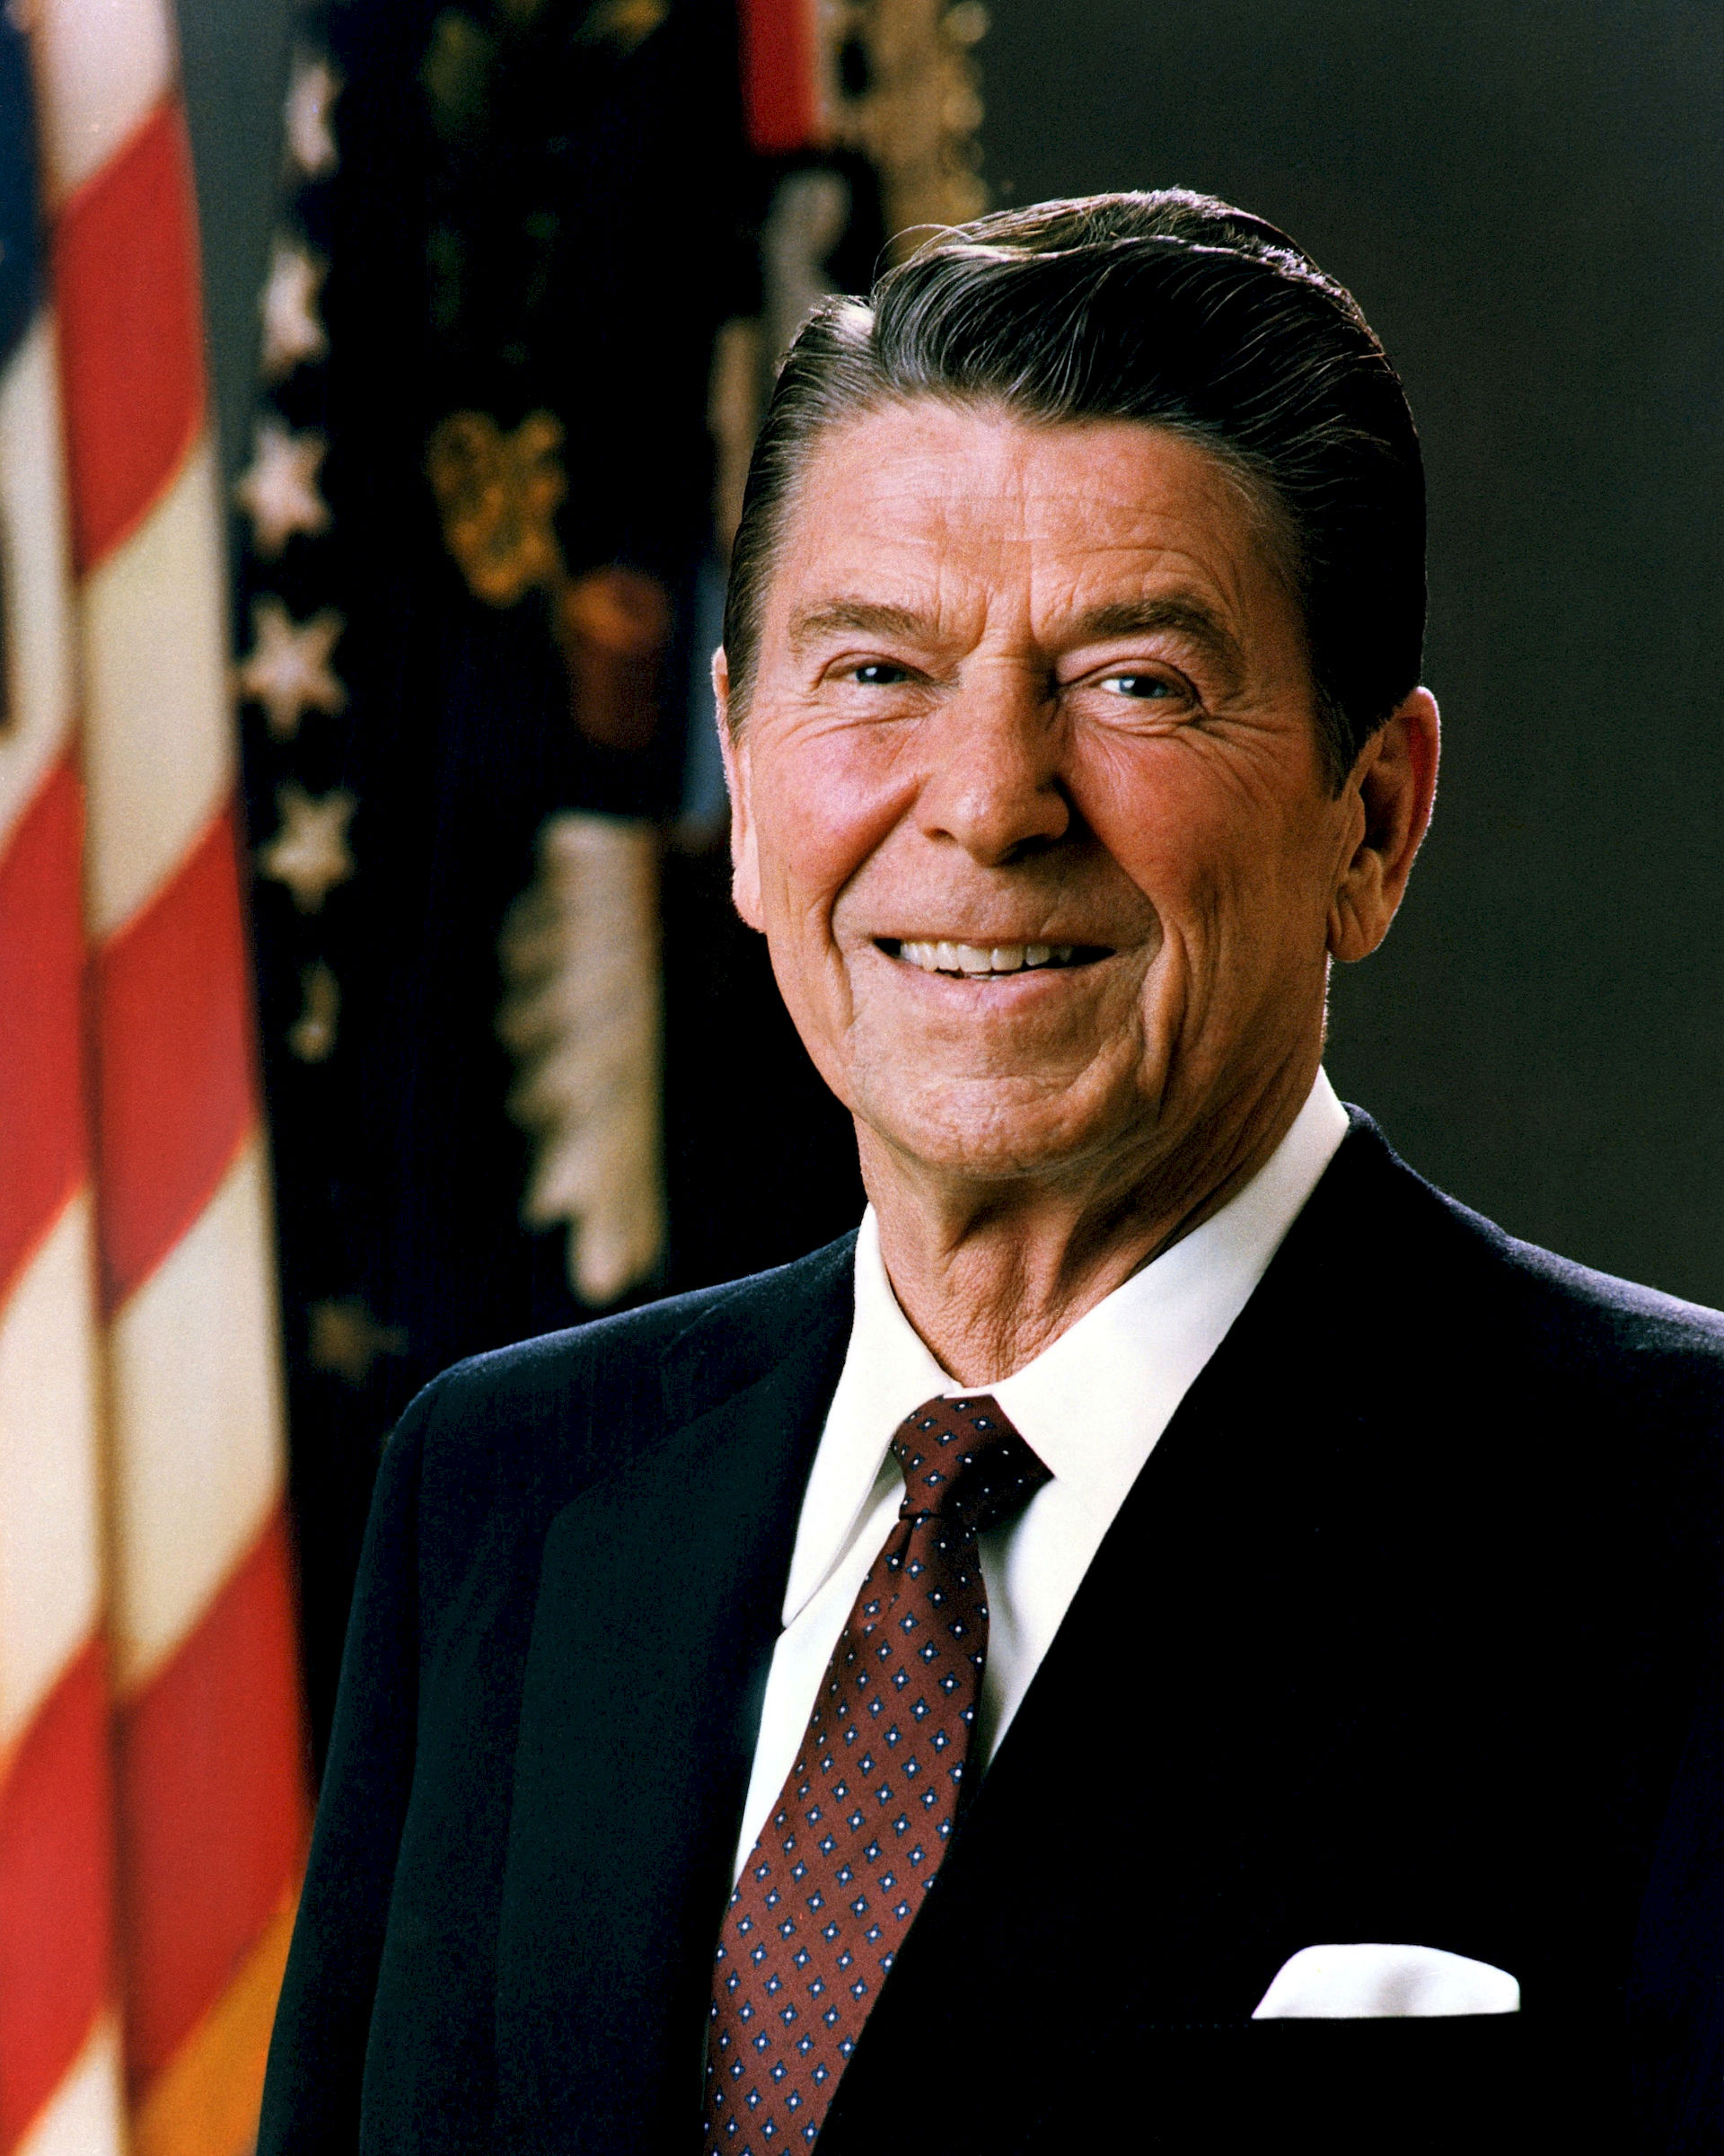 Photo of Ronald Reagan: American politician, 40th president of the United States (in office from 1981 to 1989)